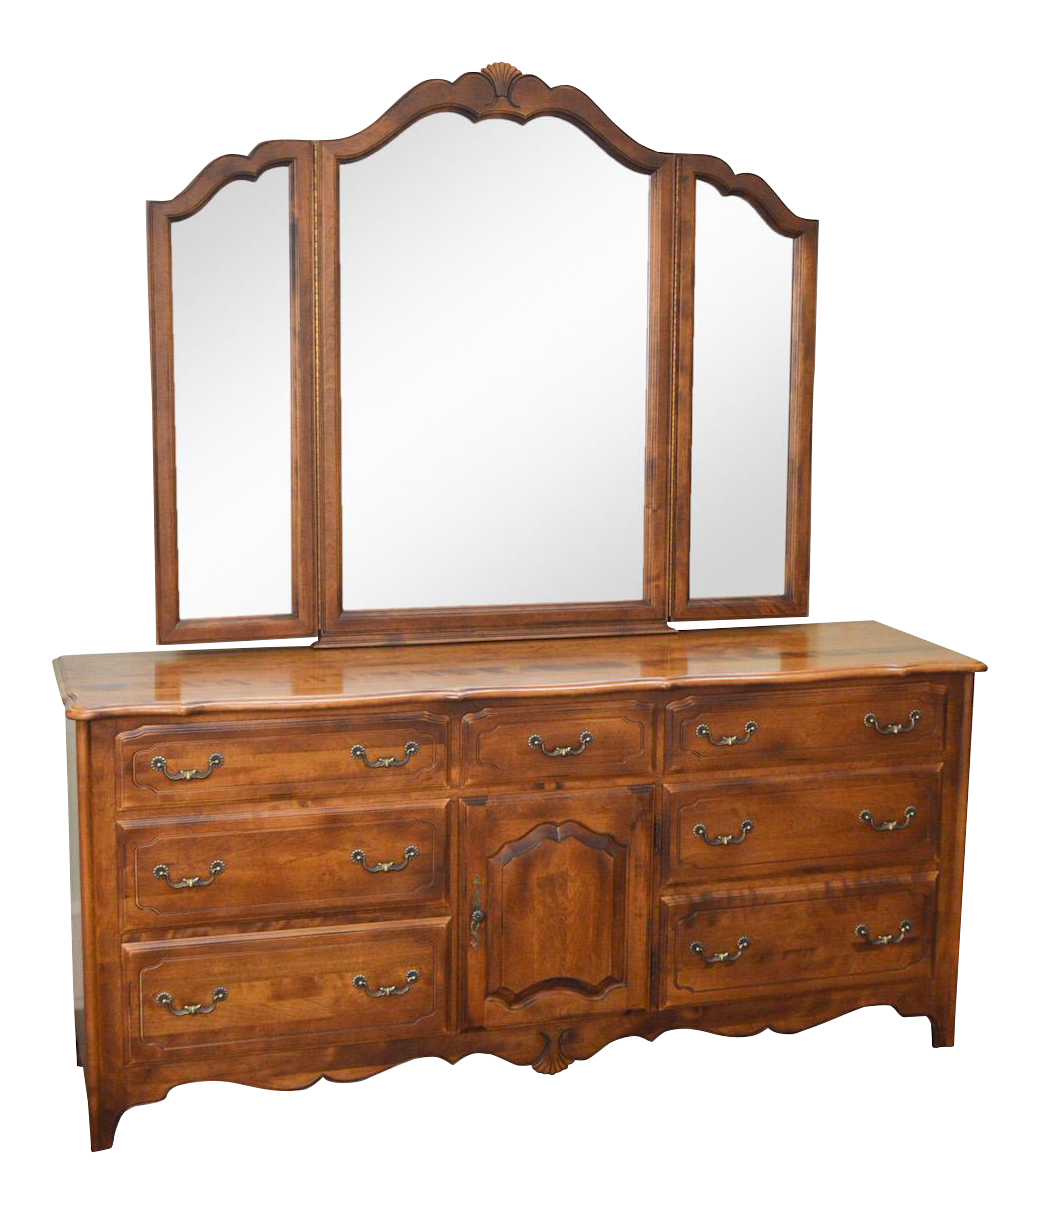 Ethan Allen French Country Coffee Table: Ethan Allen Country French Dresser W/ Trifold Mirror